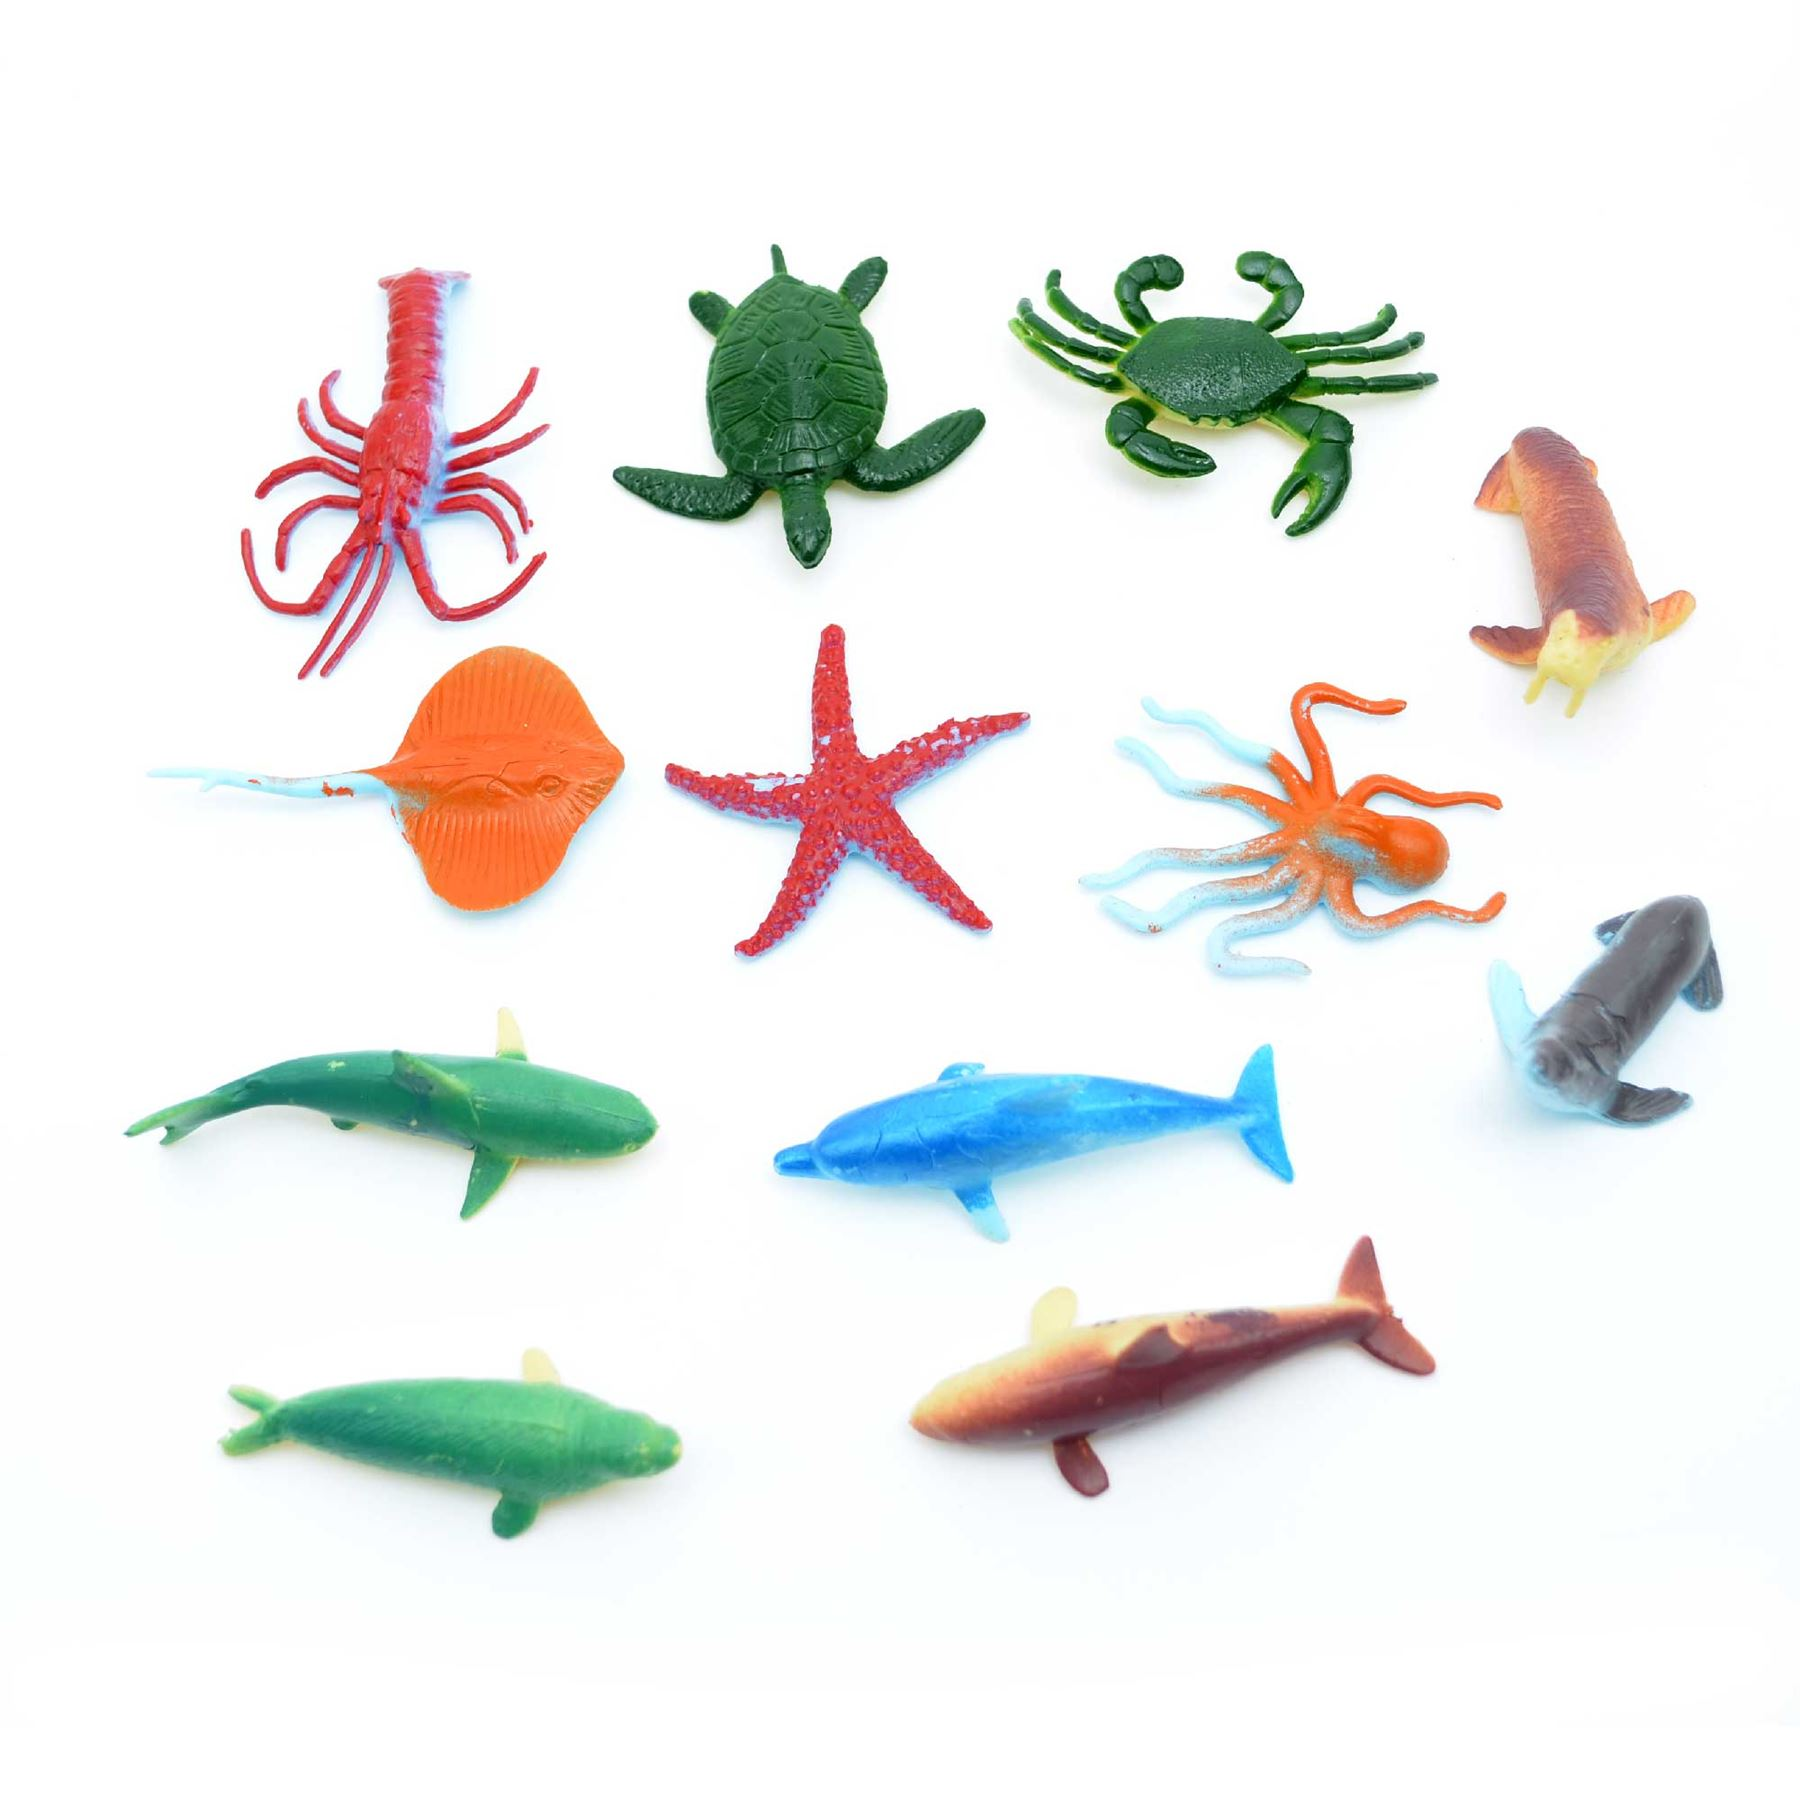 Children-Kids-Toy-Farm-Jungle-Sea-Dinosaurs-Animals-Figurines-Party-Bag-Fillers